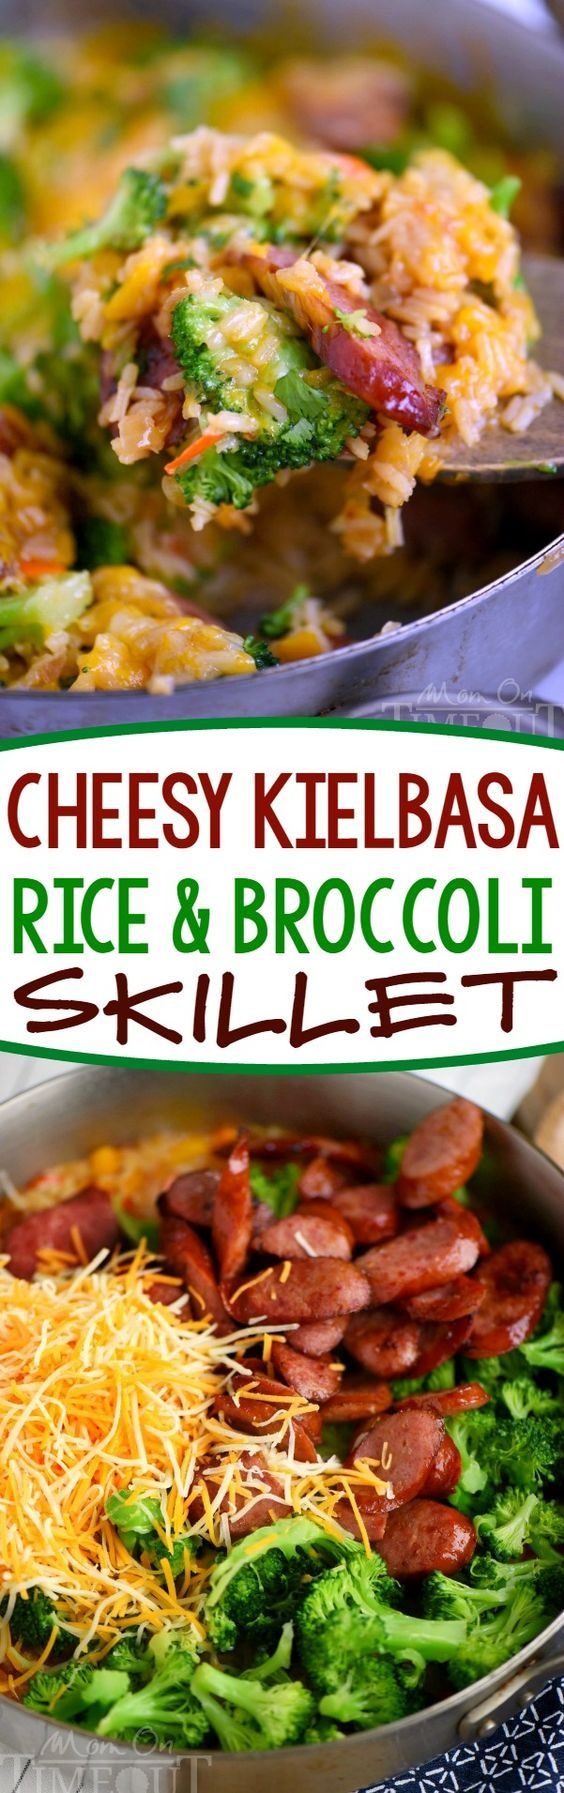 Cheesy Kielbasa Rice and Broccoli Skillet